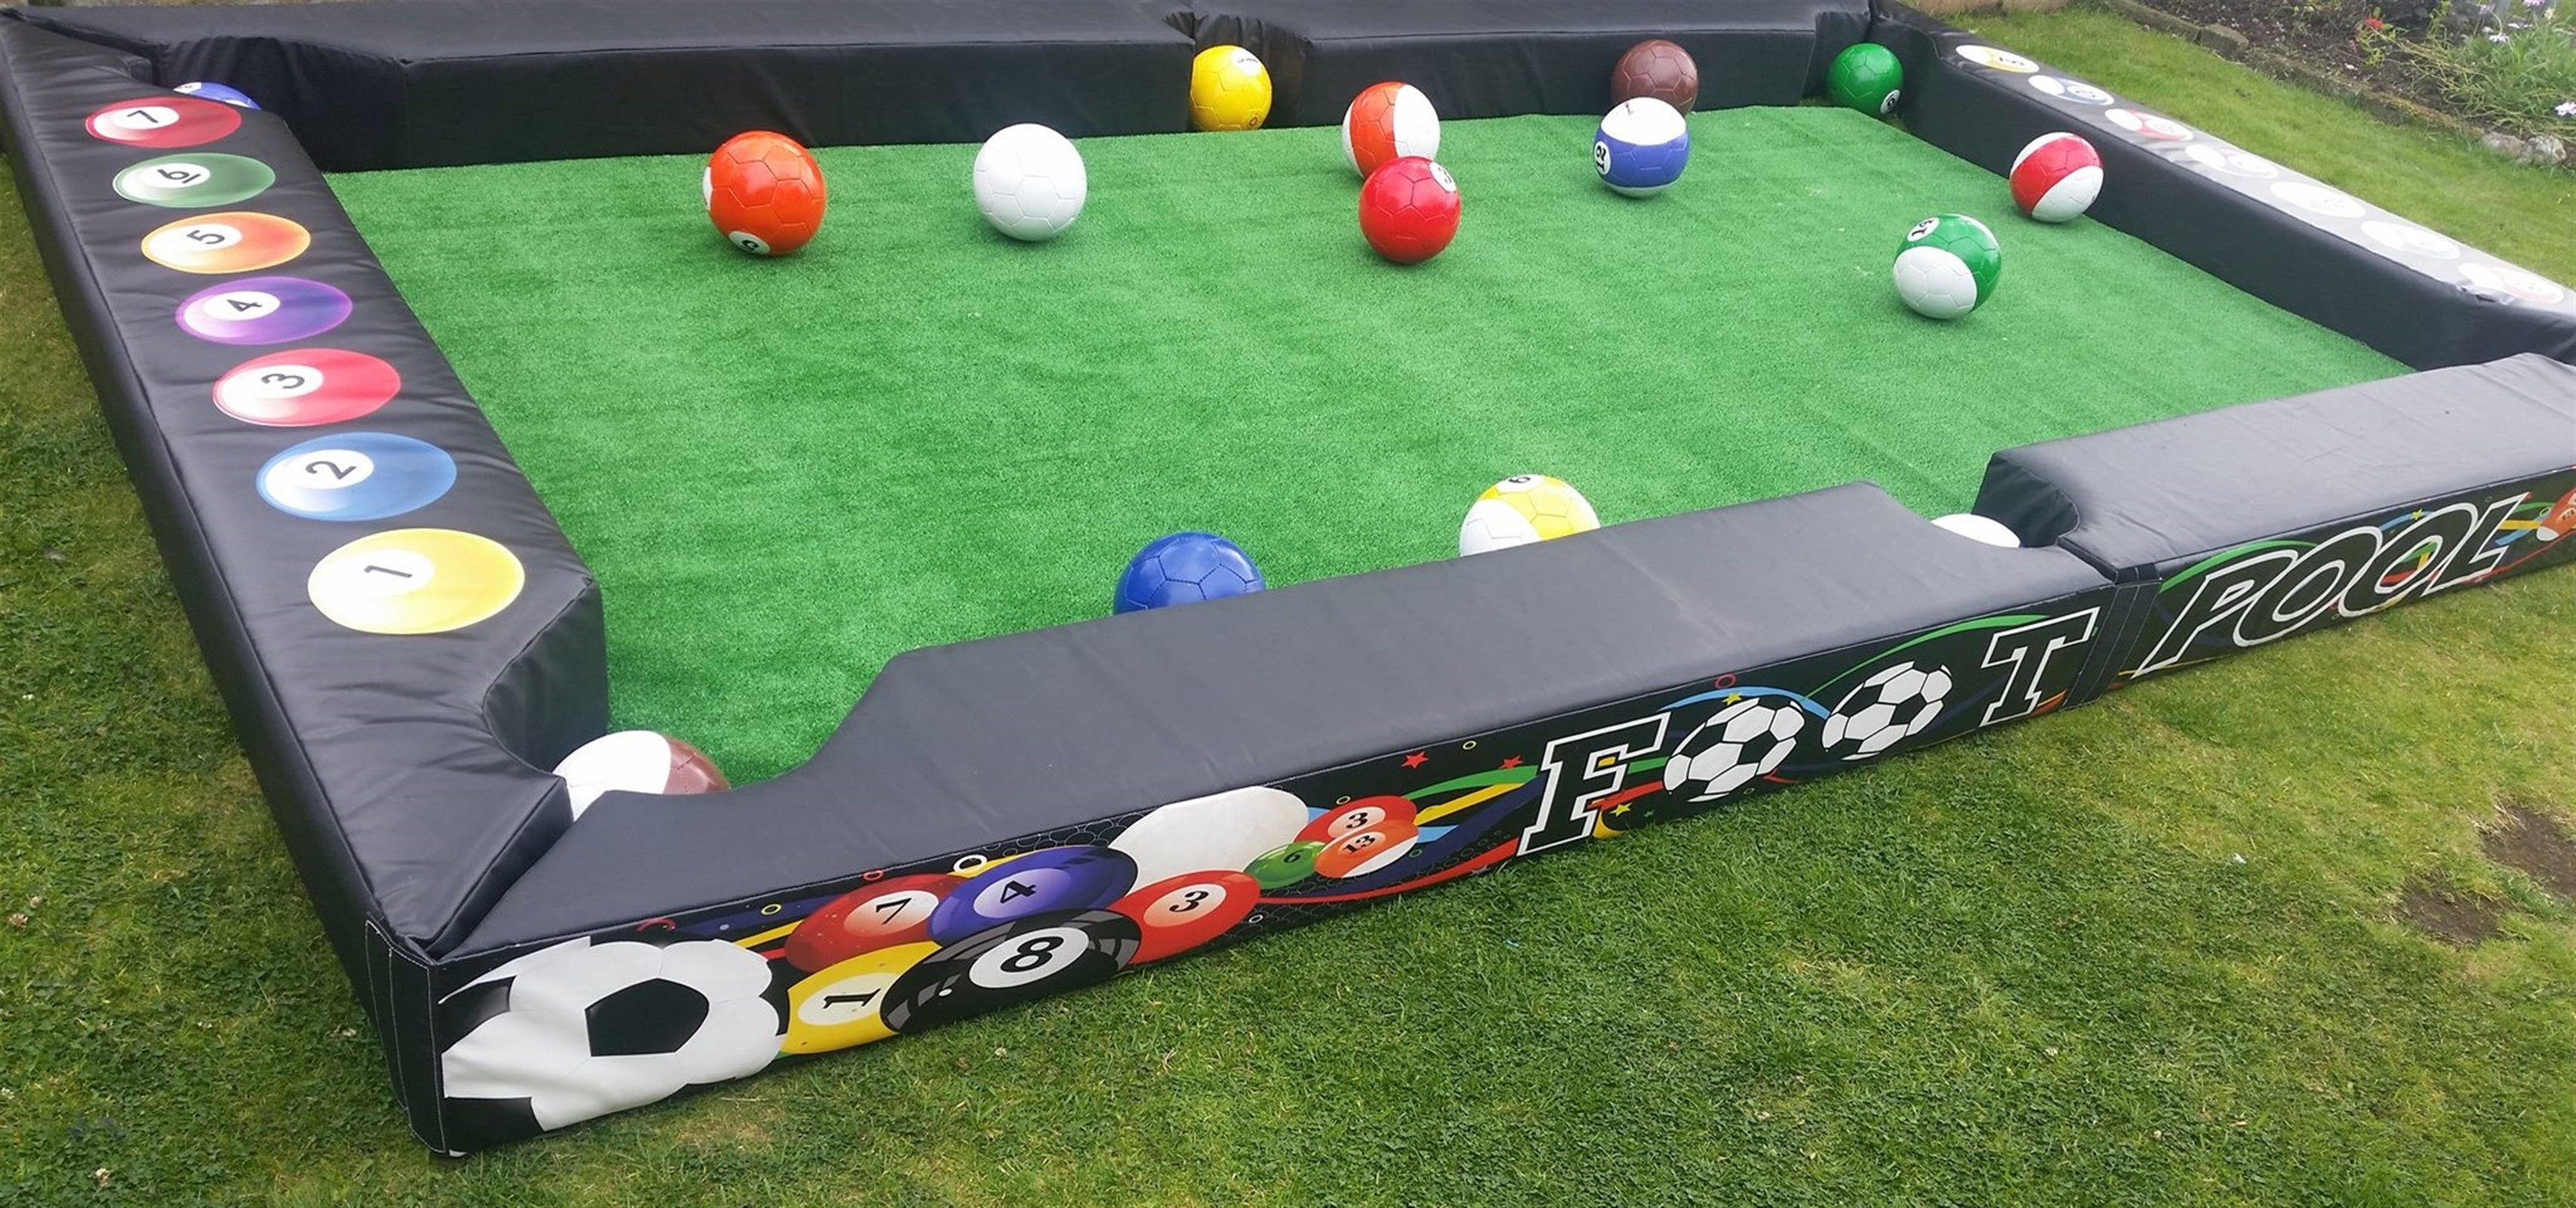 billiards introducing table soccer adjust human challenge pool productlist